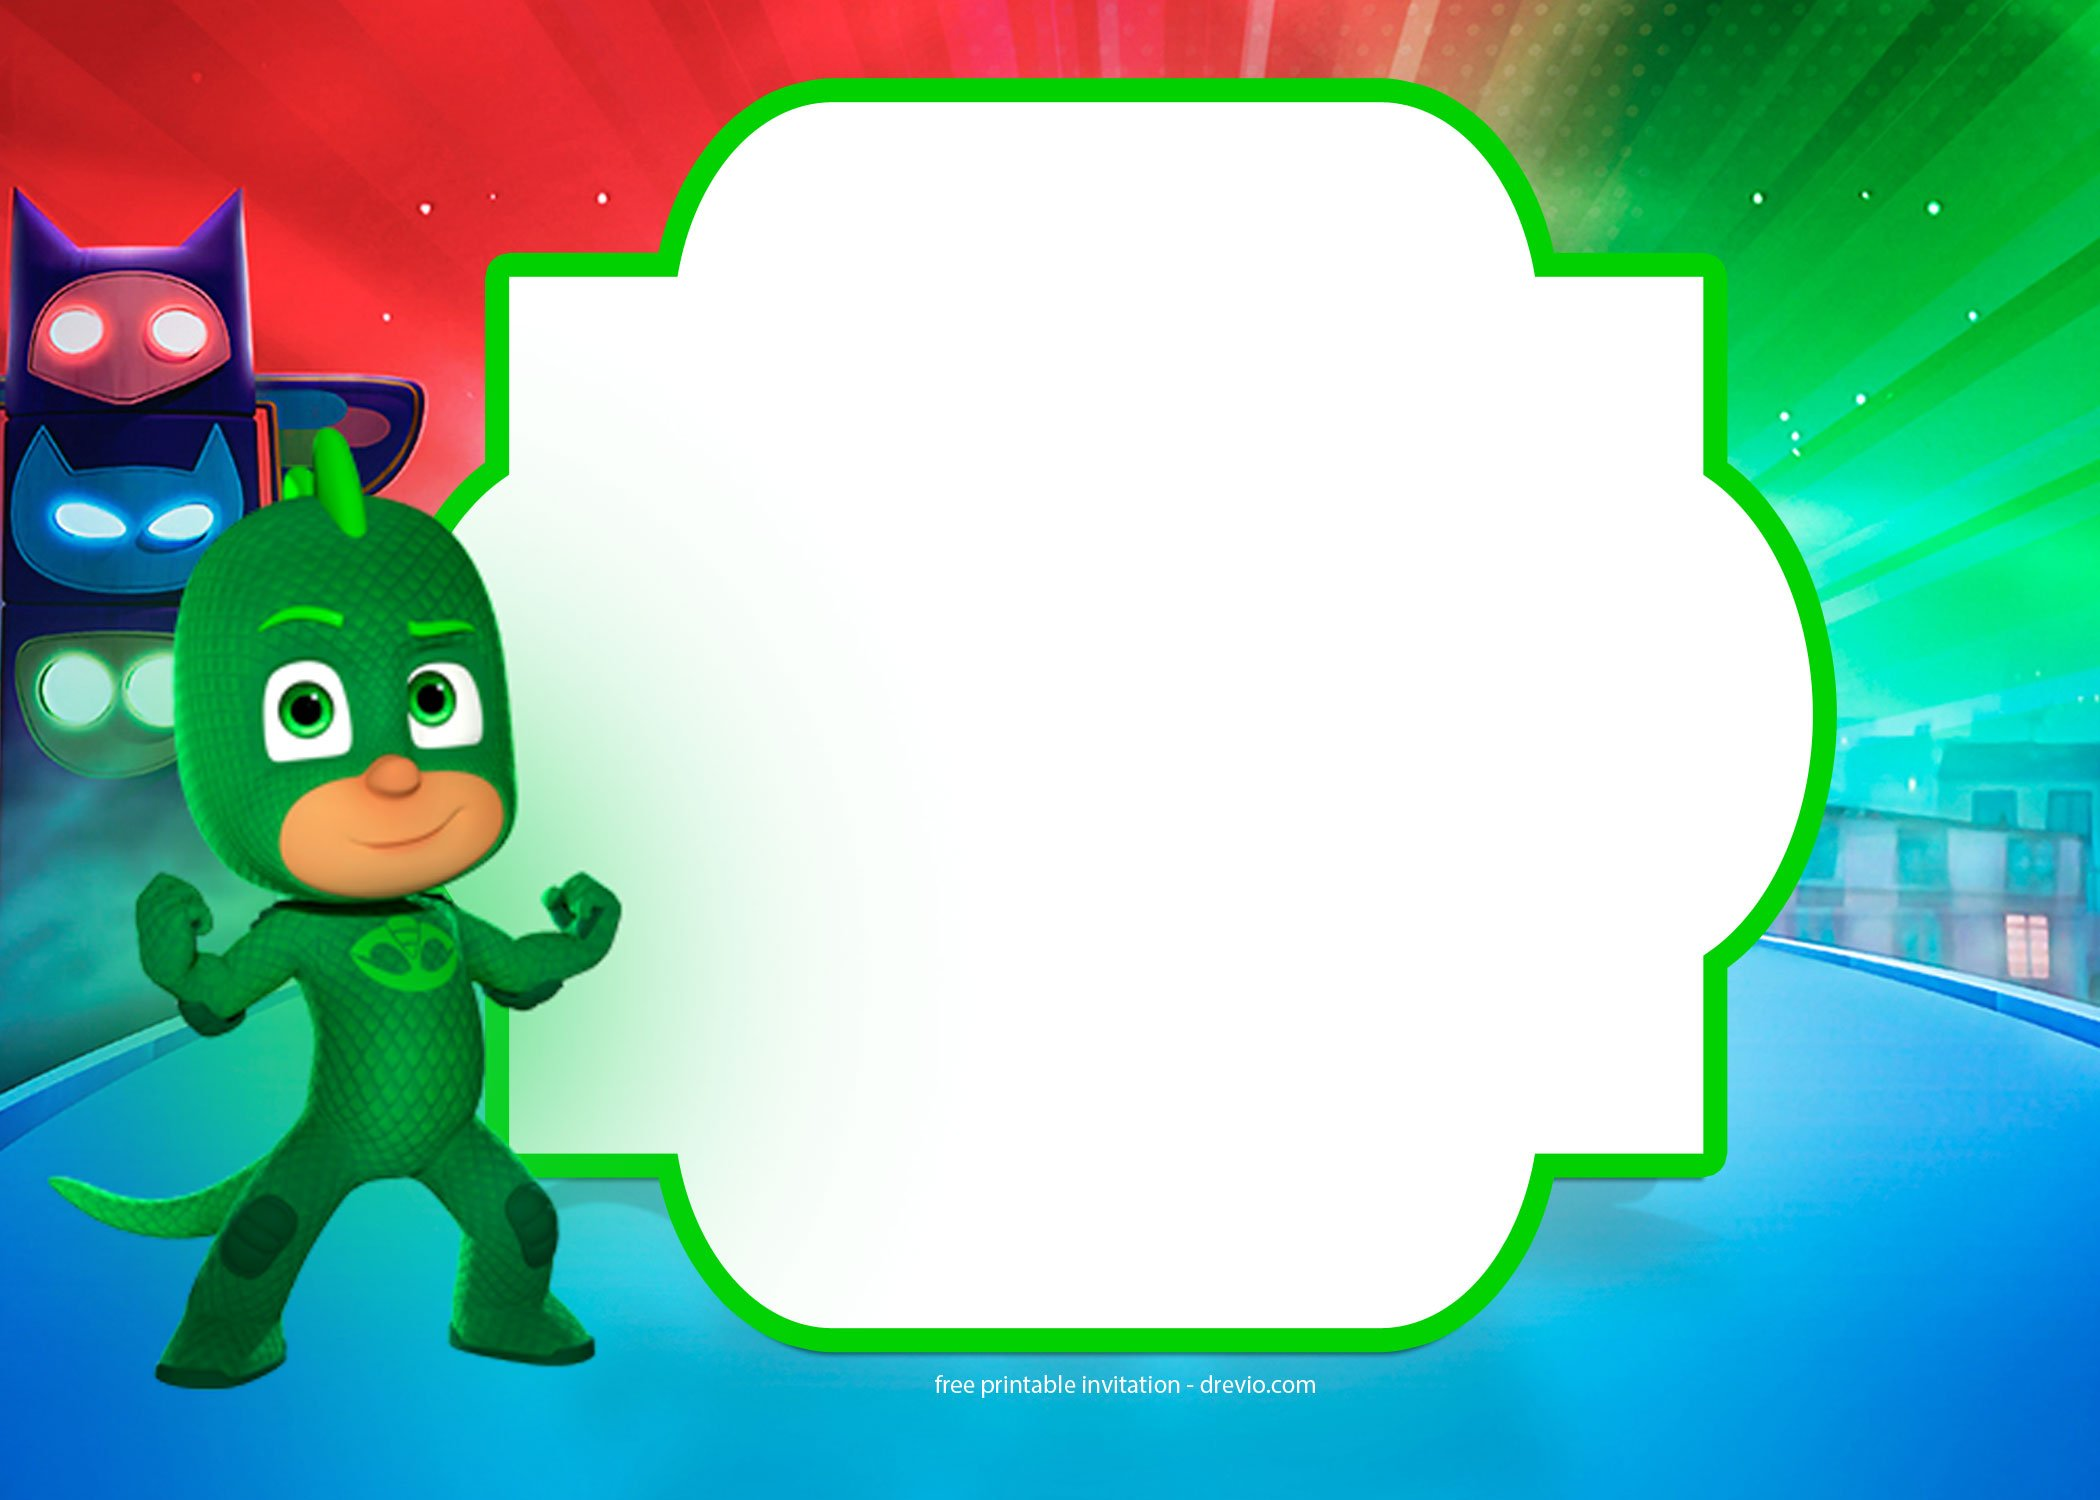 Our Latest PJ Masks Invitation Templates